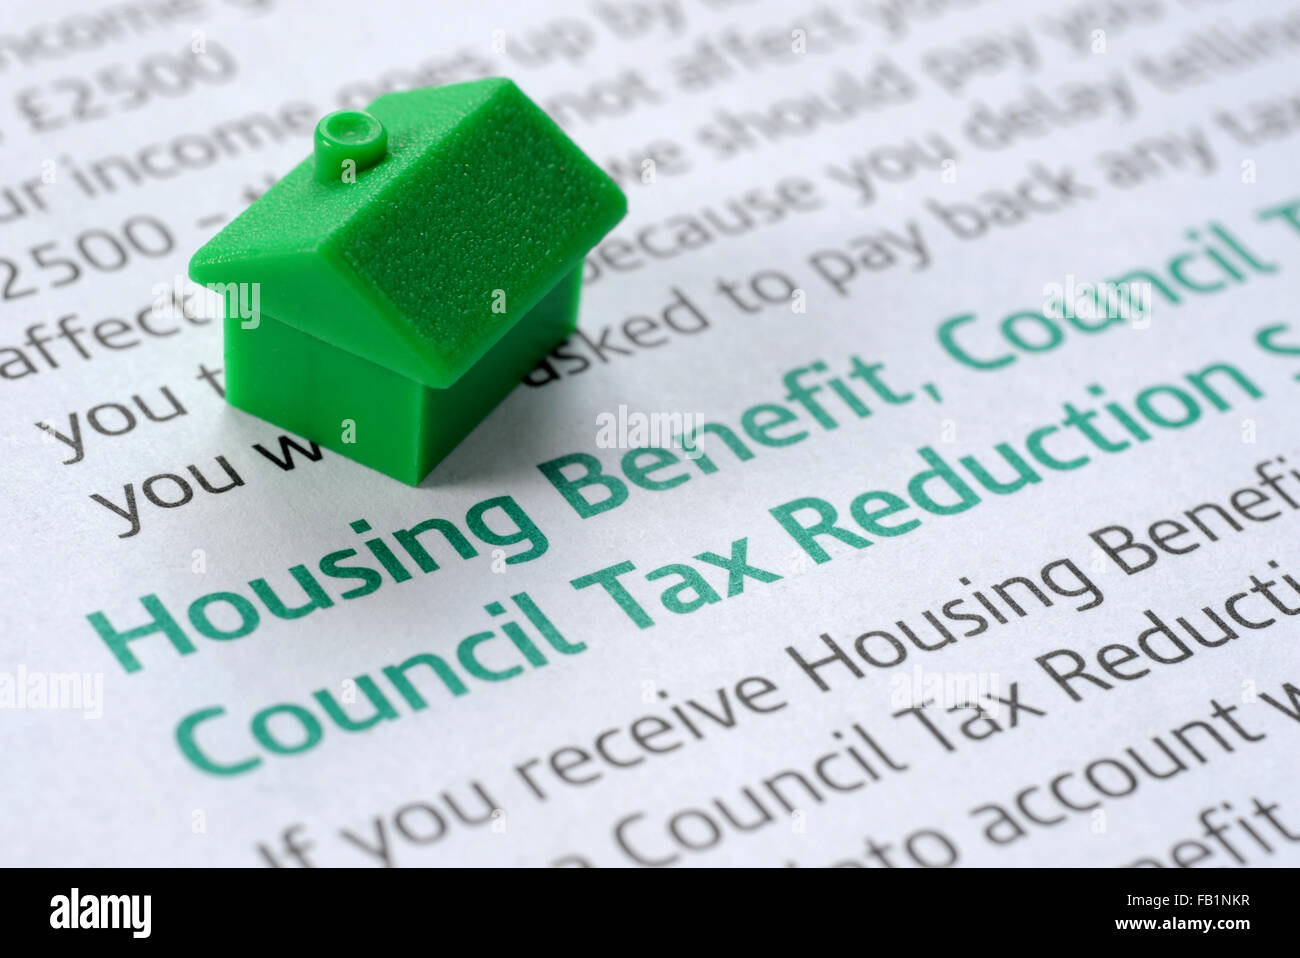 HOUSING BENEFIT INFORMATION LEAFLET WITH MODEL HOUSE RE BENEFITS ...